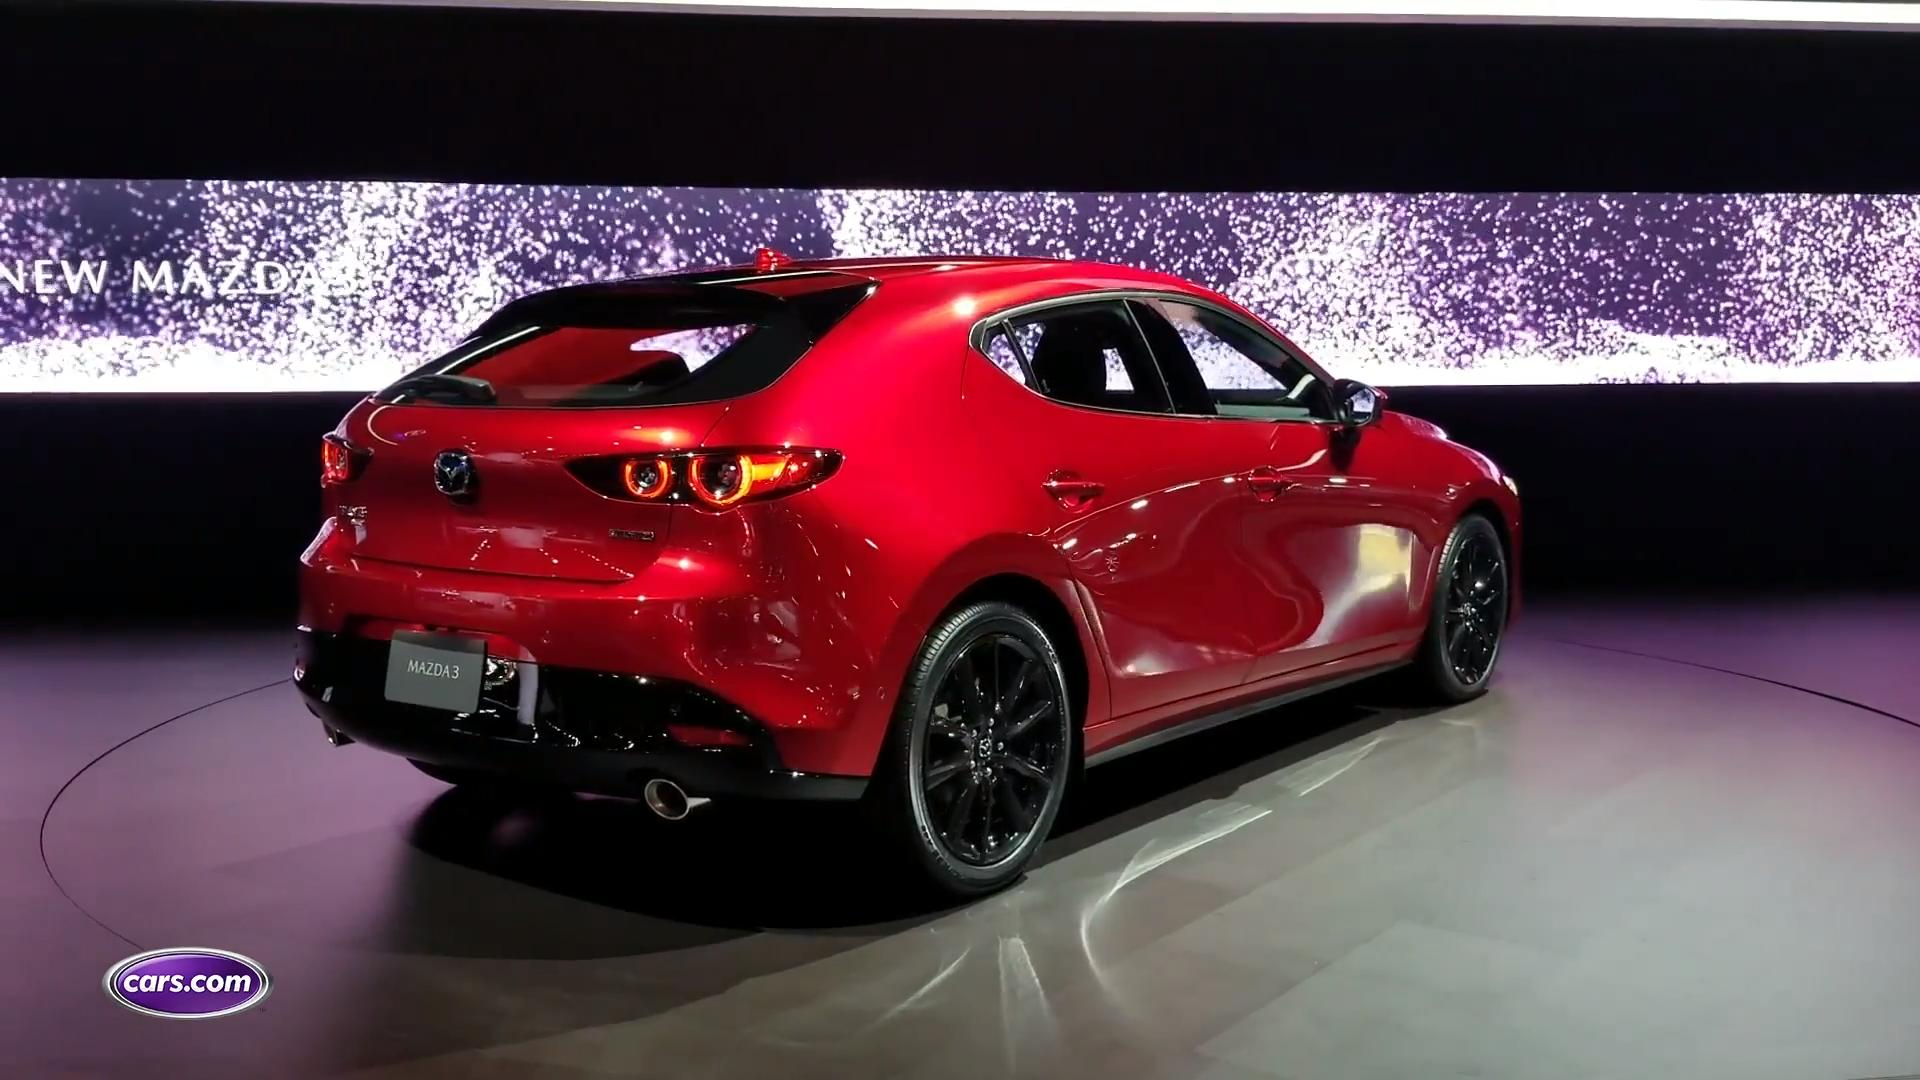 Video: 2019 Mazda3: First Look – Cars.com